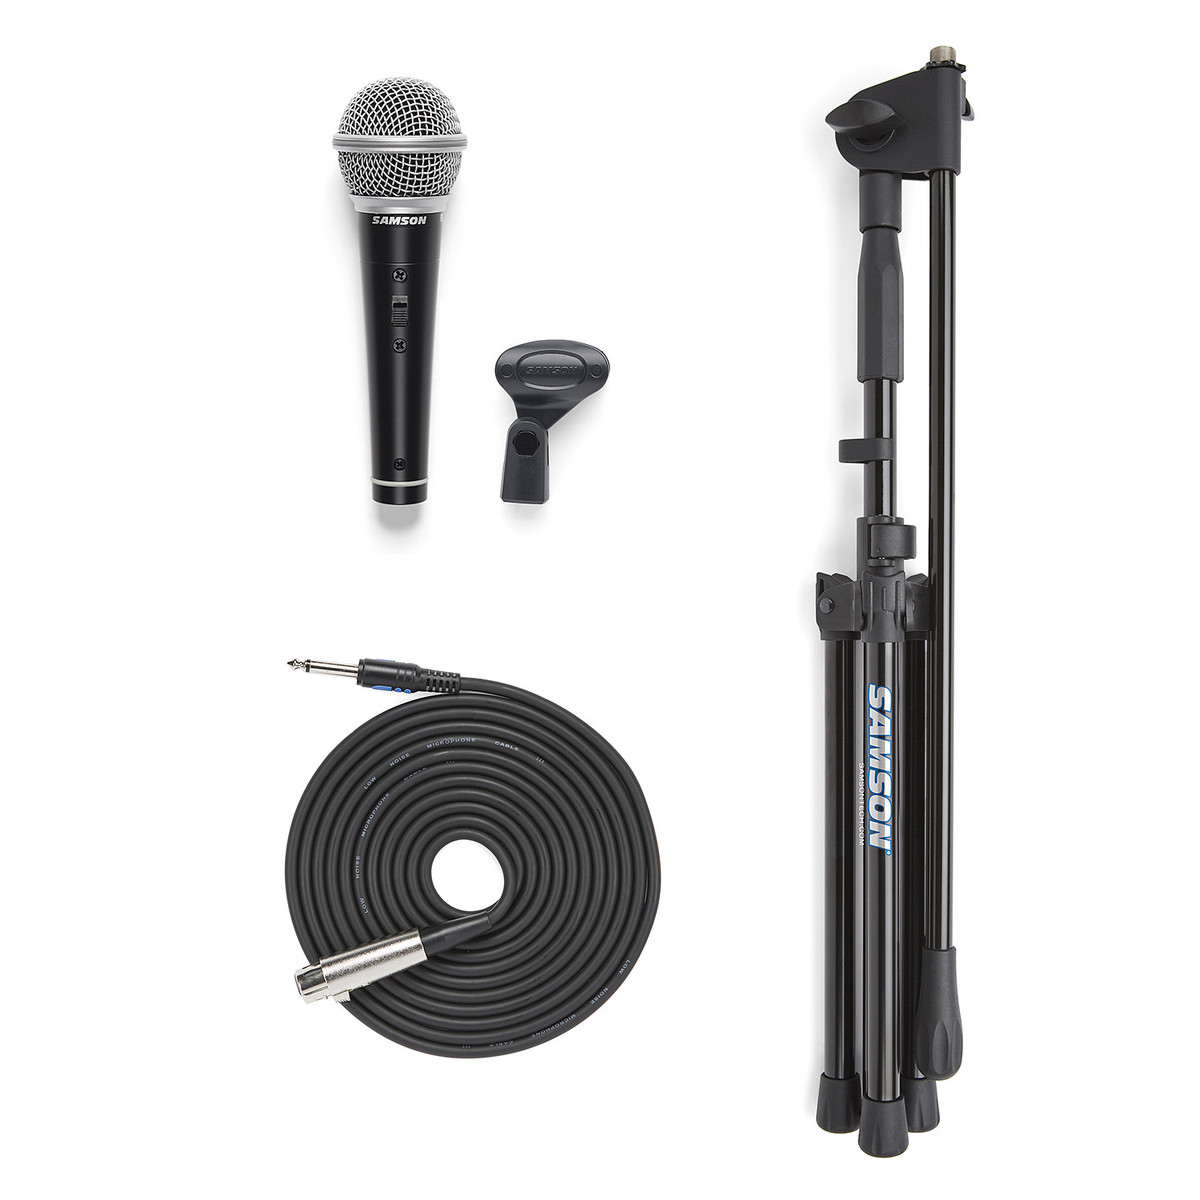 Samson Vp10 Microphone Value Pack With Xlr To Jack Cable At Gear4music Wiring Loading Zoom